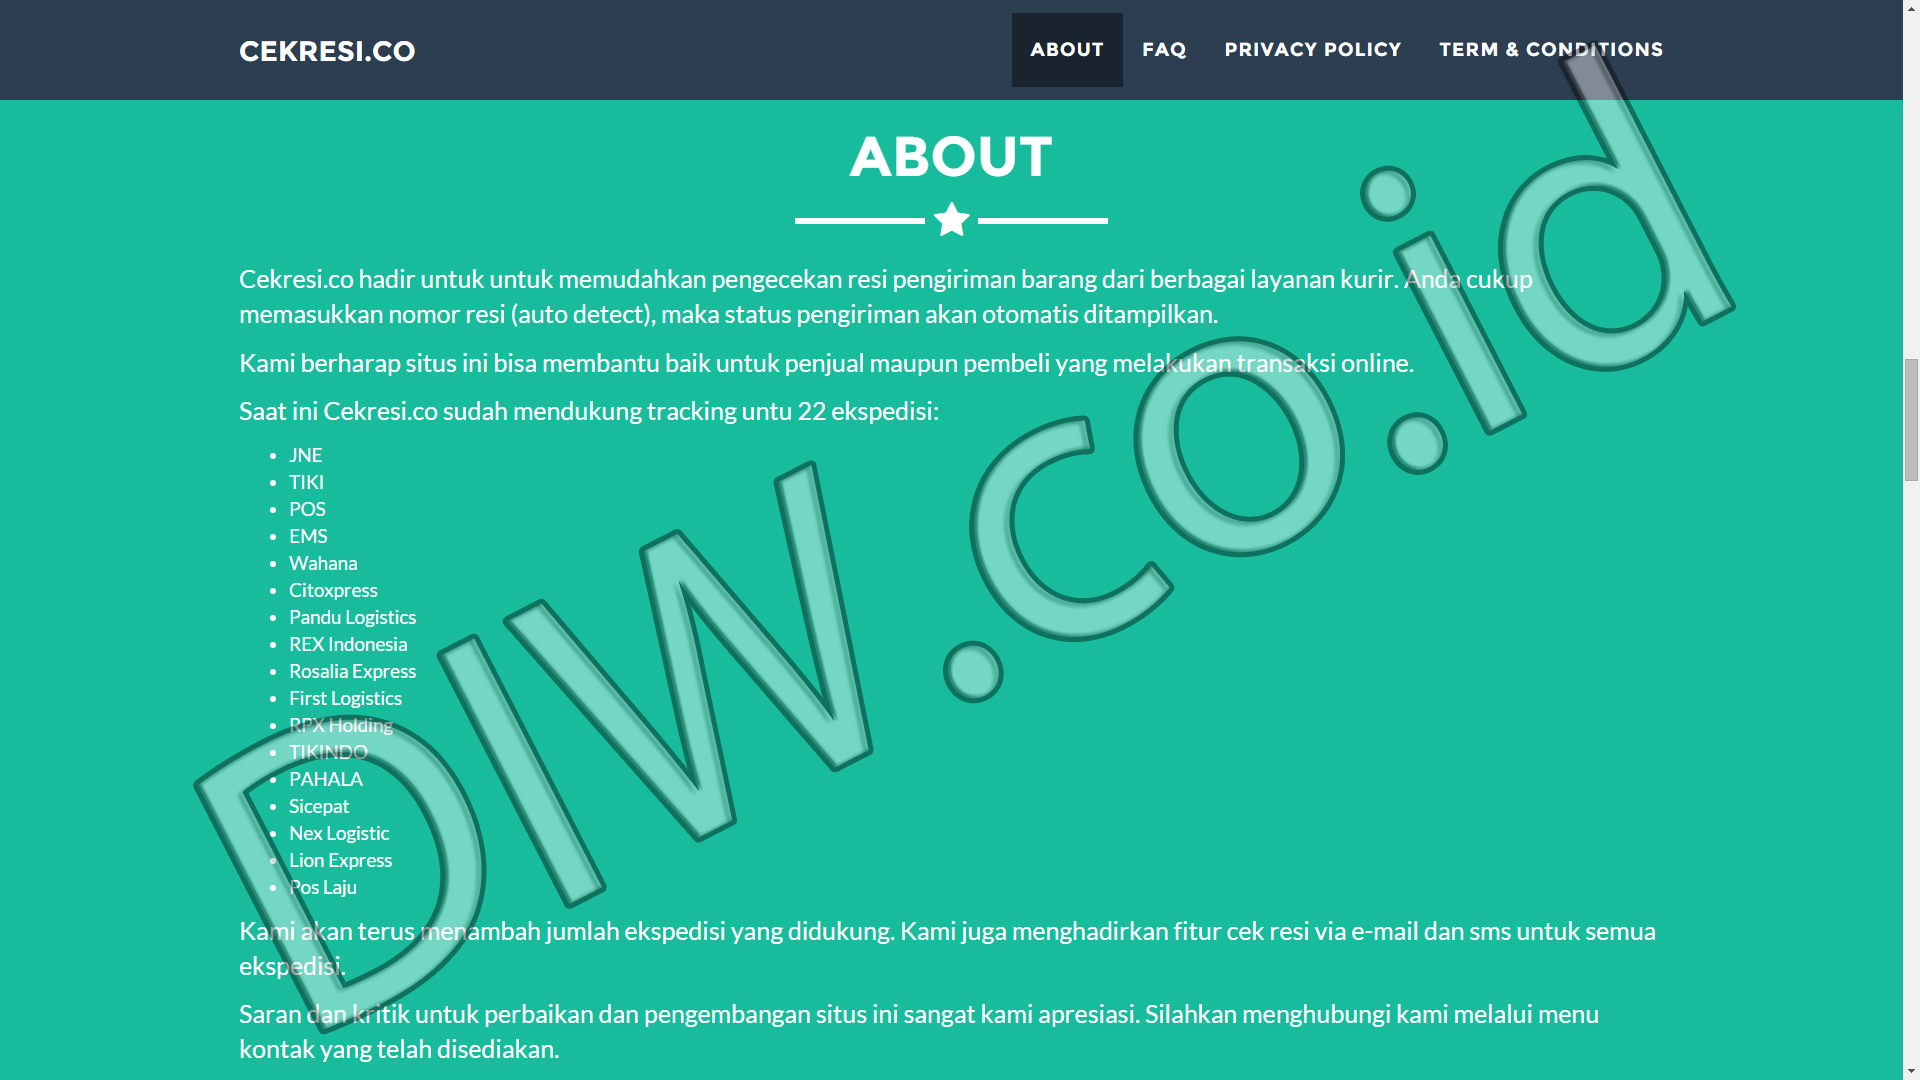 Portfolio 3 - Cekresi - Andri Sunardi - Freelancer - Web Developer - CEO DIW.co.id